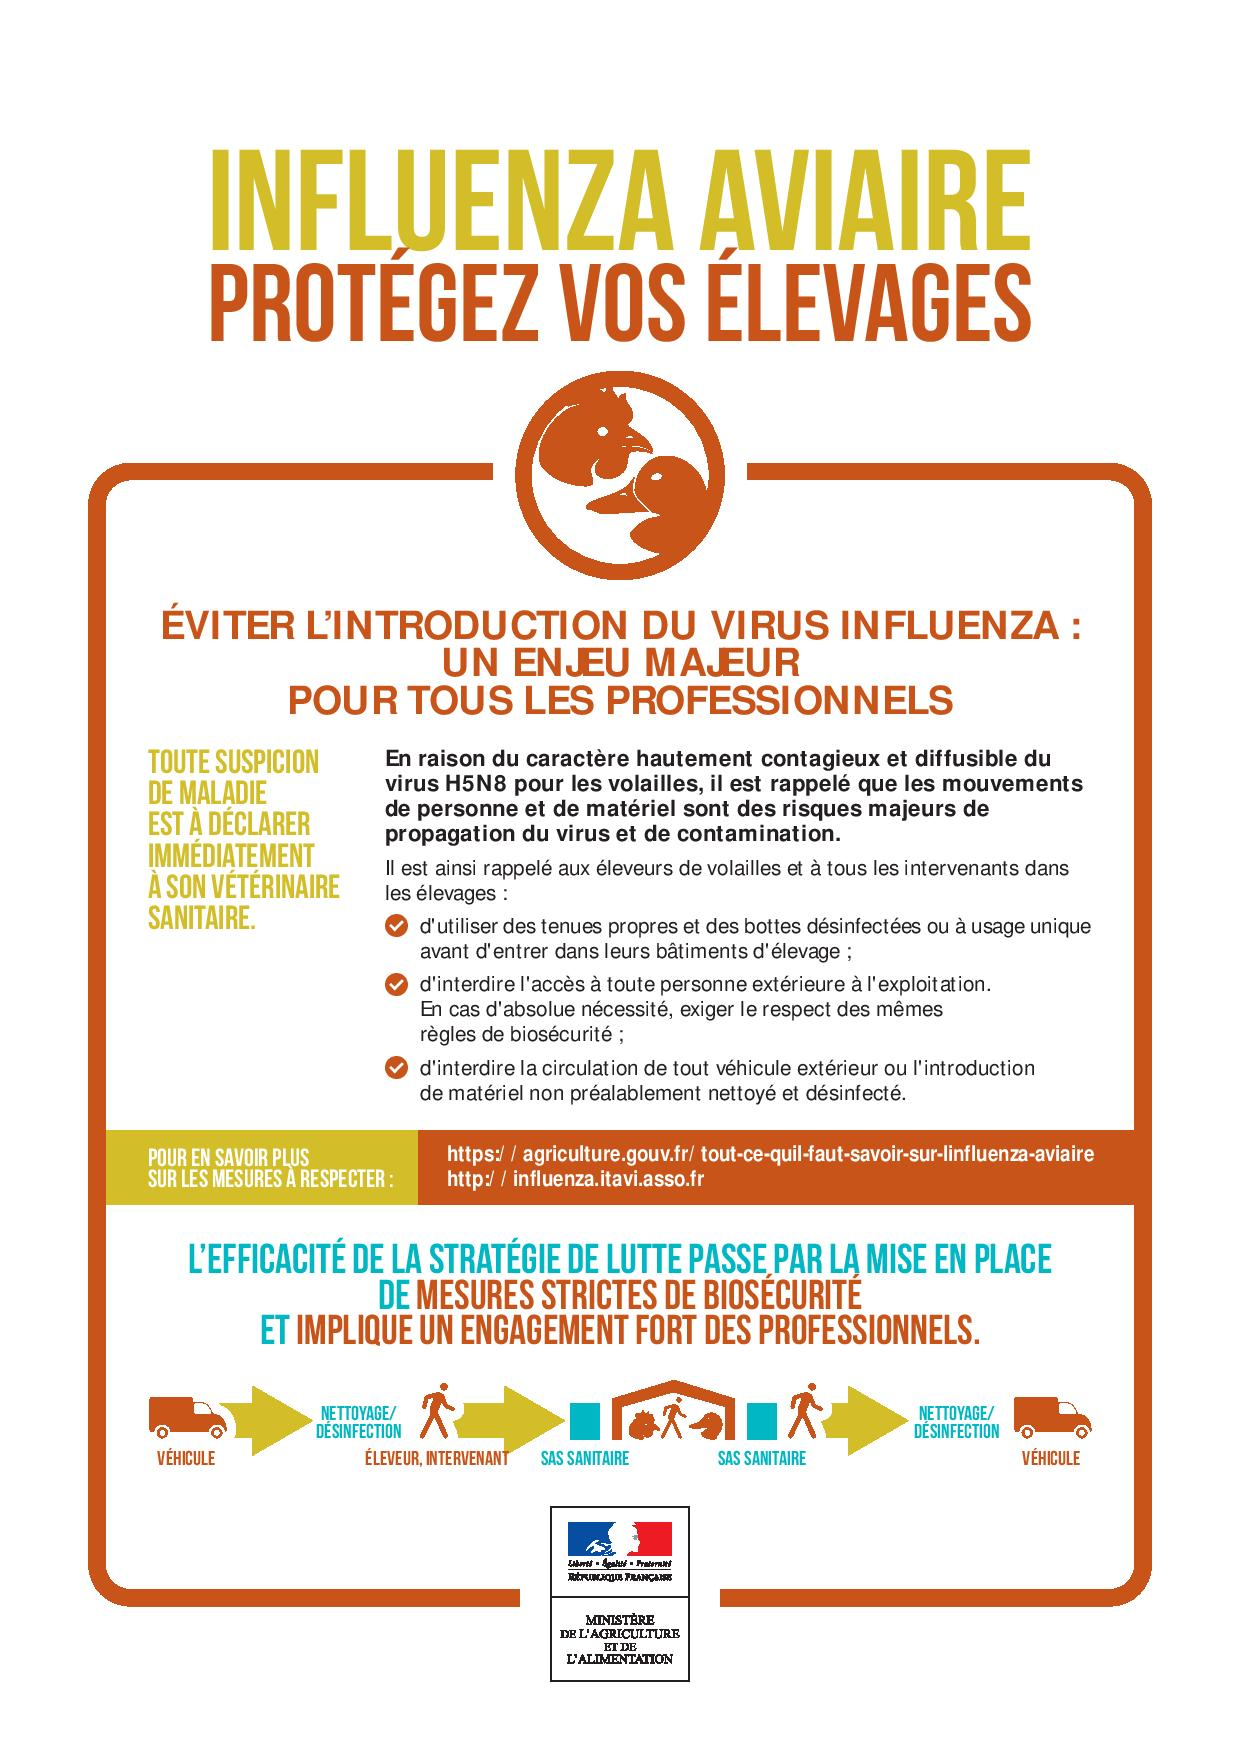 affiche influ aviaire elevages1